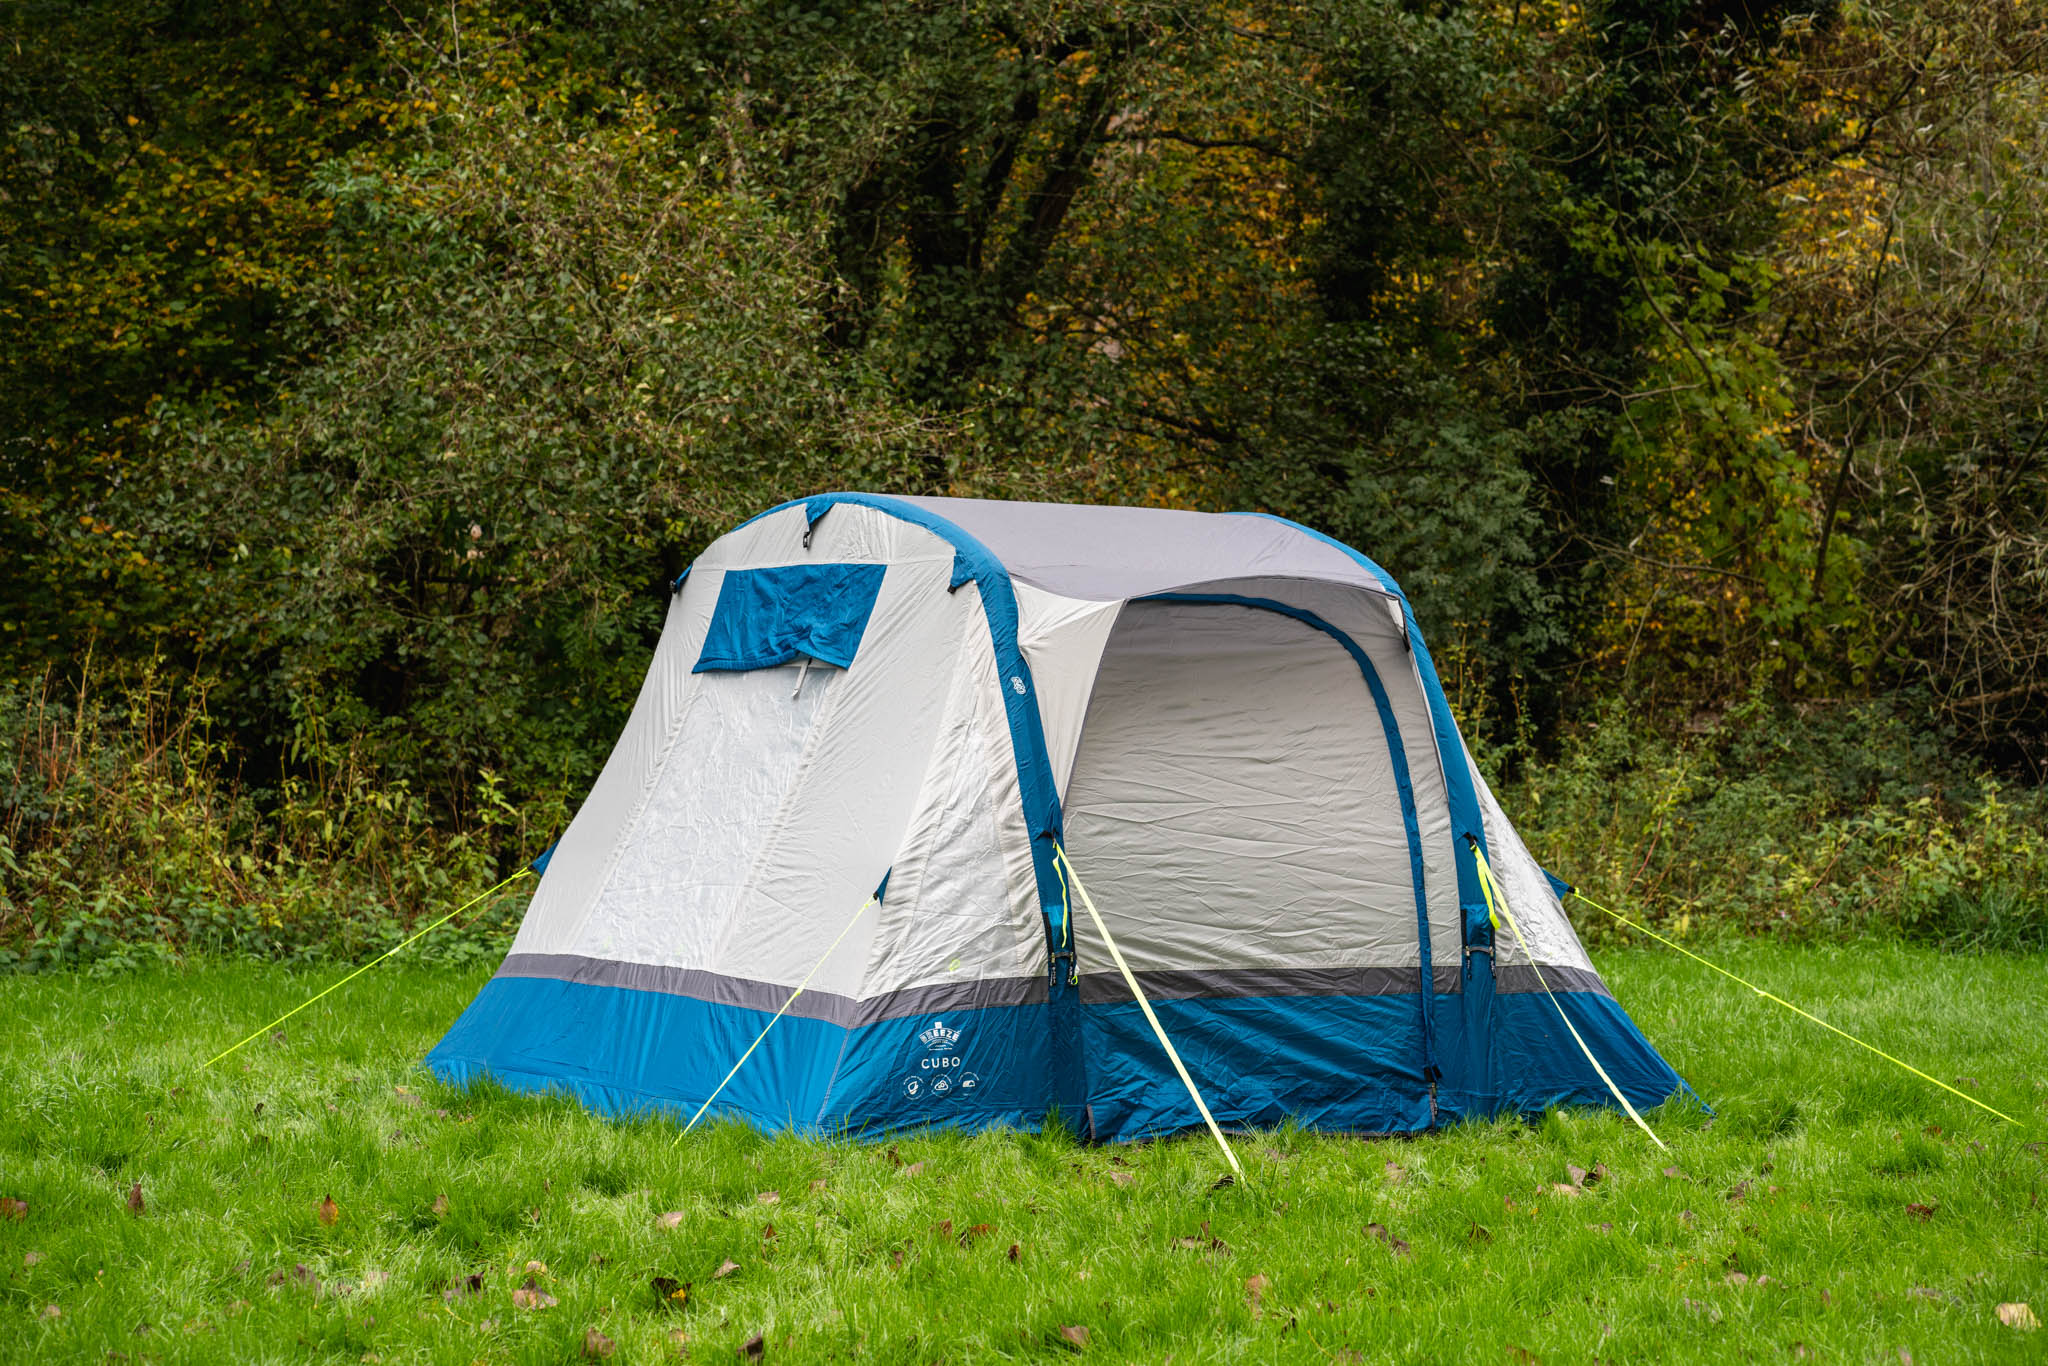 small blue and white tent